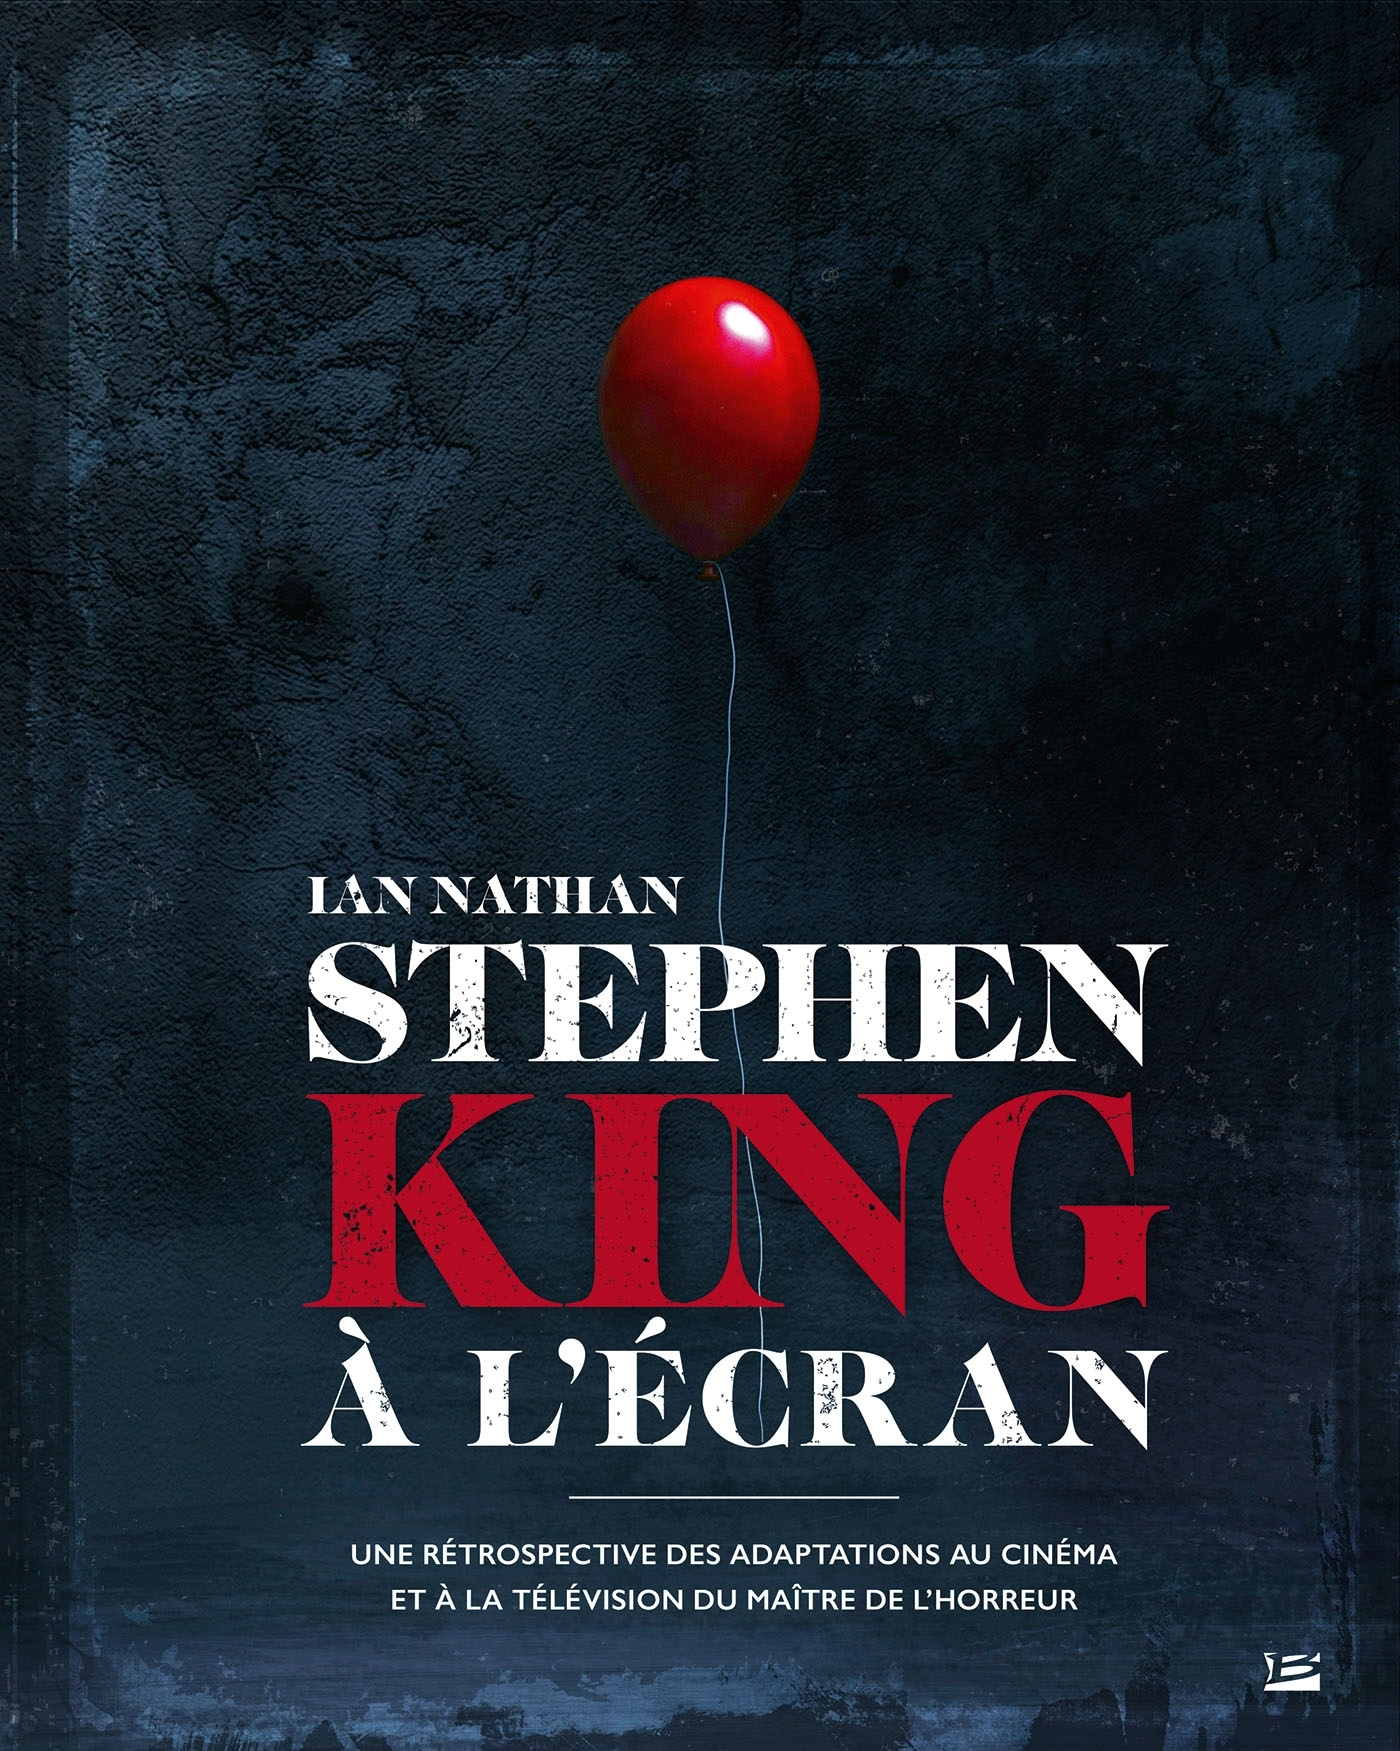 STEPHEN KING A L'ECRAN